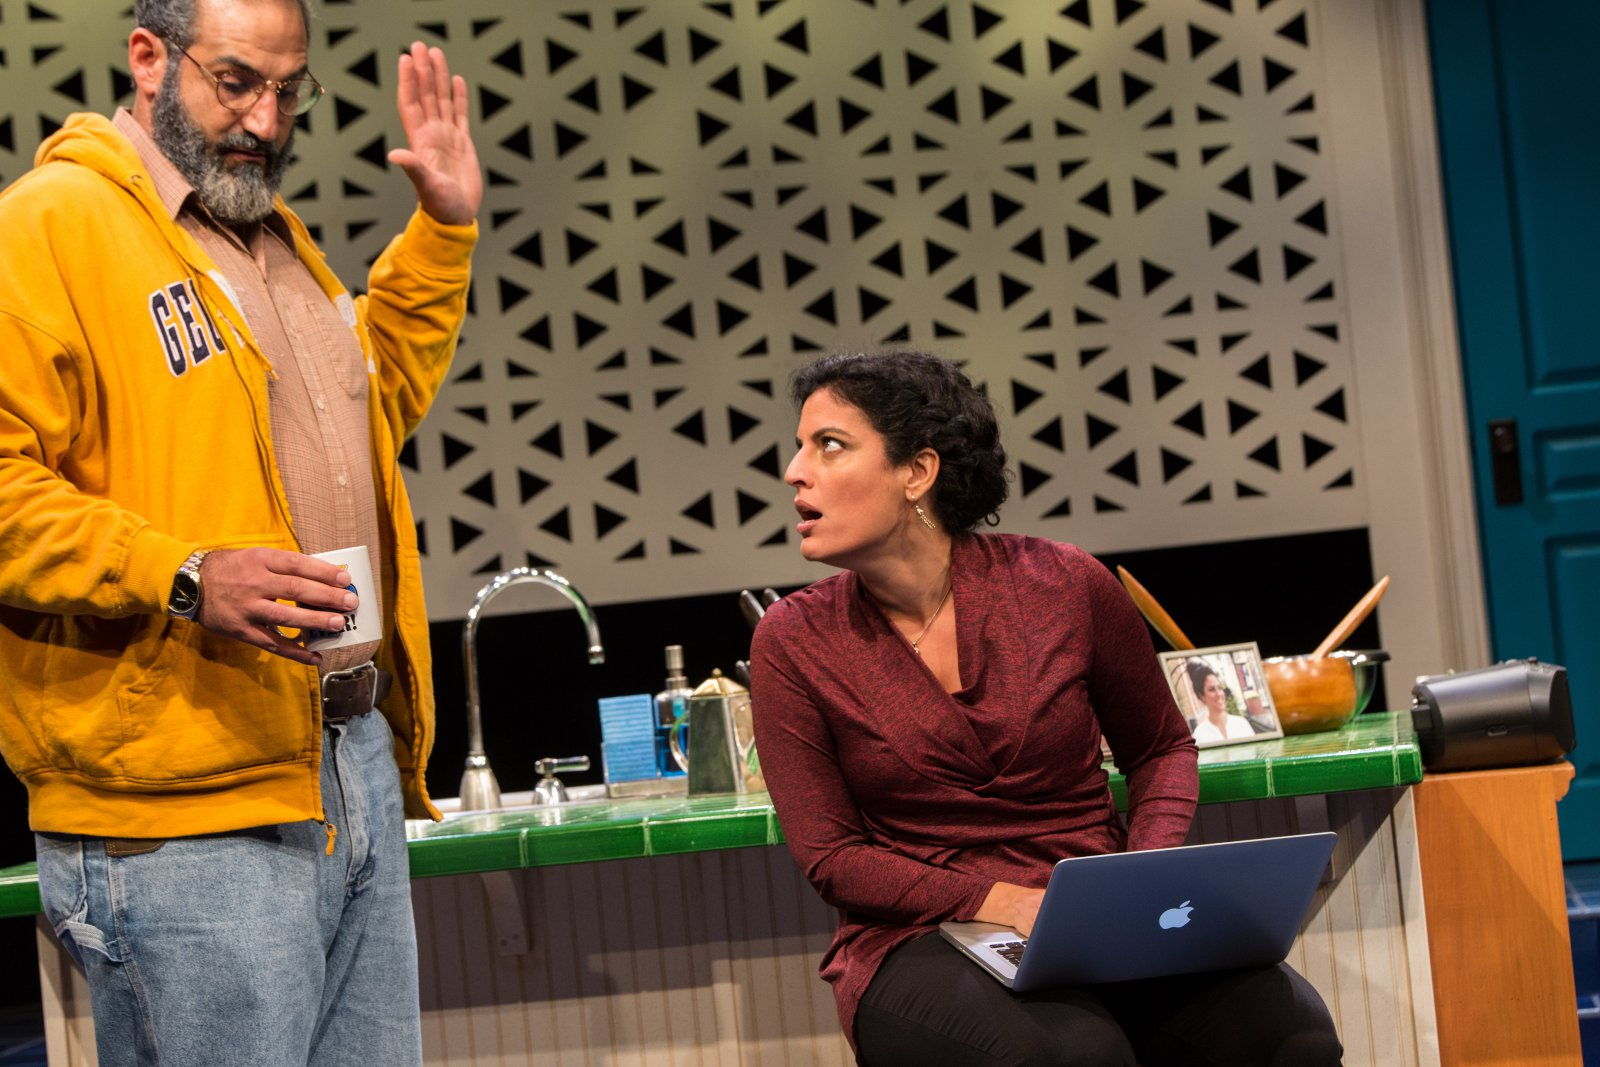 Milwaukee Repertory Theater presents The Who & The What in the Stiemke Studio from September 27 to November 5, 2017. Left to Right: Brian Abraham and Soraya Broukhim